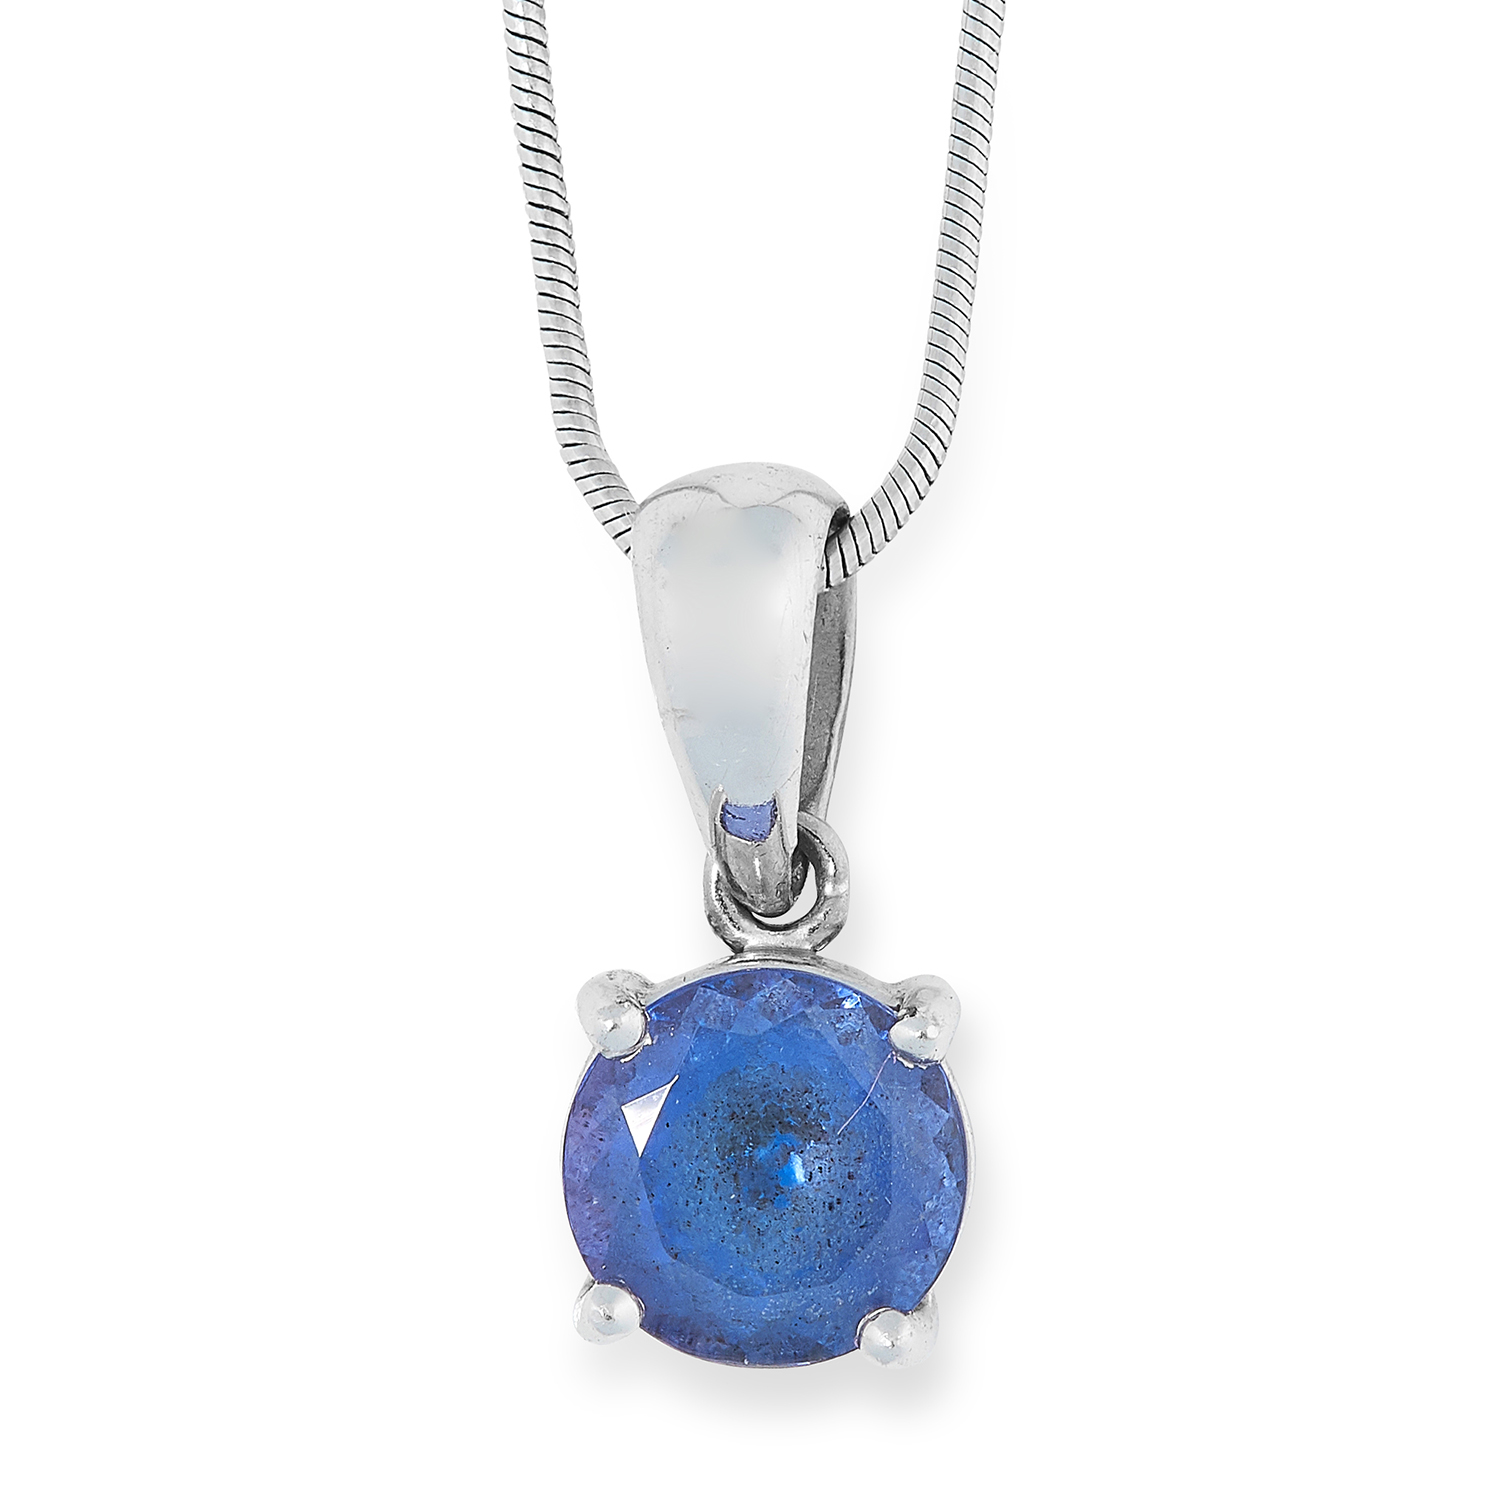 TANZANITE PENDANT set with a round cut tanzanite of approximately 1.32 carats, 43cm, 4.9g.